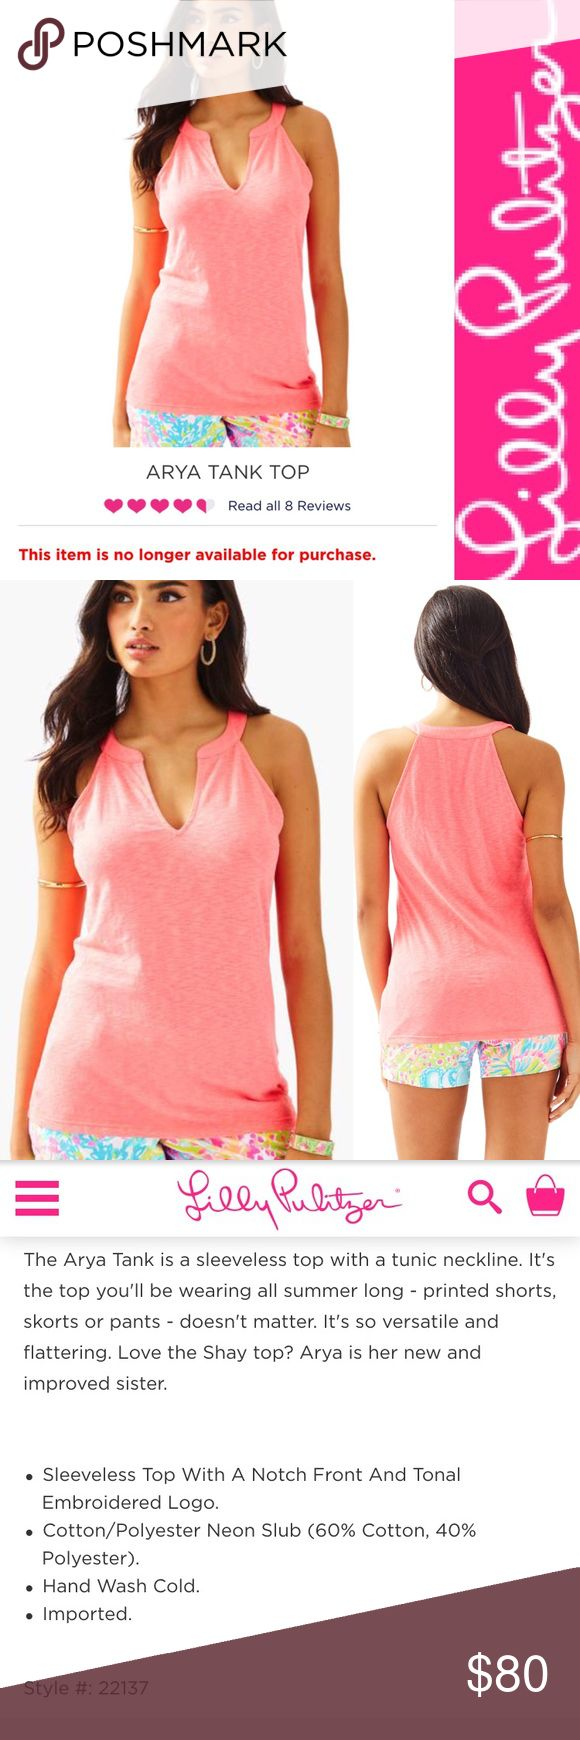 XL Lilly Pulitzer Arya Tank - Pink Sun Ray NWT XL Lilly Pulitzer Arya Tank - Pink Sun Ray. Style #22137 - OUT OF STOCK item!!! Note: Lilly website reviews say it runs slightly large. If you love the Shay Top, Arya is her new & improved sister. (Pink sun ray color is like coral, very pretty!) model image & item info from Lilly website and actual item pictured. NO TRADES PRICE FIRM. Thx for shopping my closet 💞 ****not eligible for bundle discount. Lilly Pulitzer Tops Tank Tops